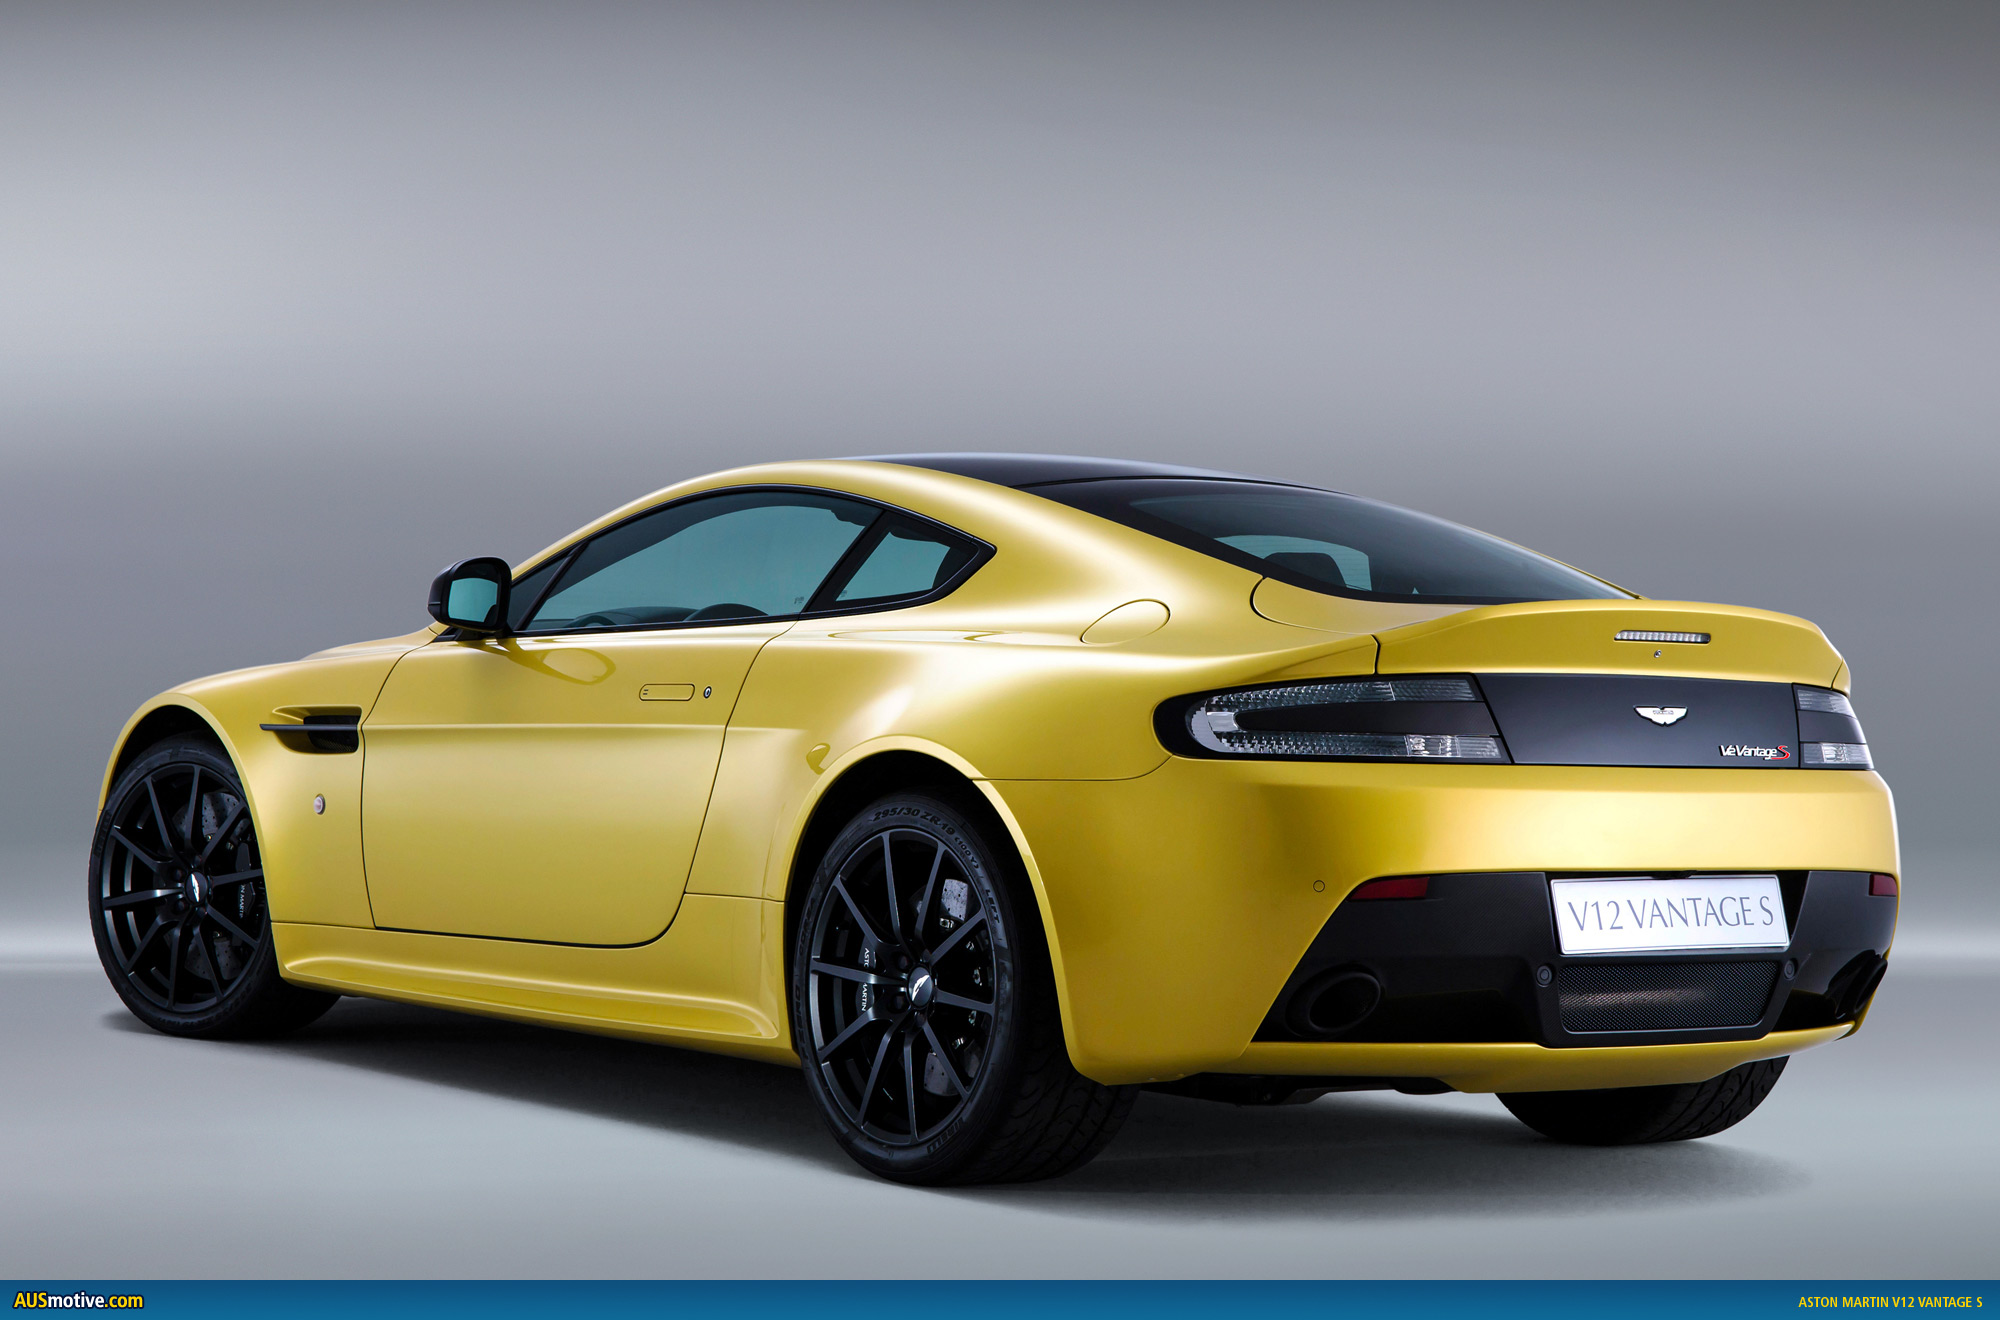 aston martin v12 vantage s revealed. Black Bedroom Furniture Sets. Home Design Ideas